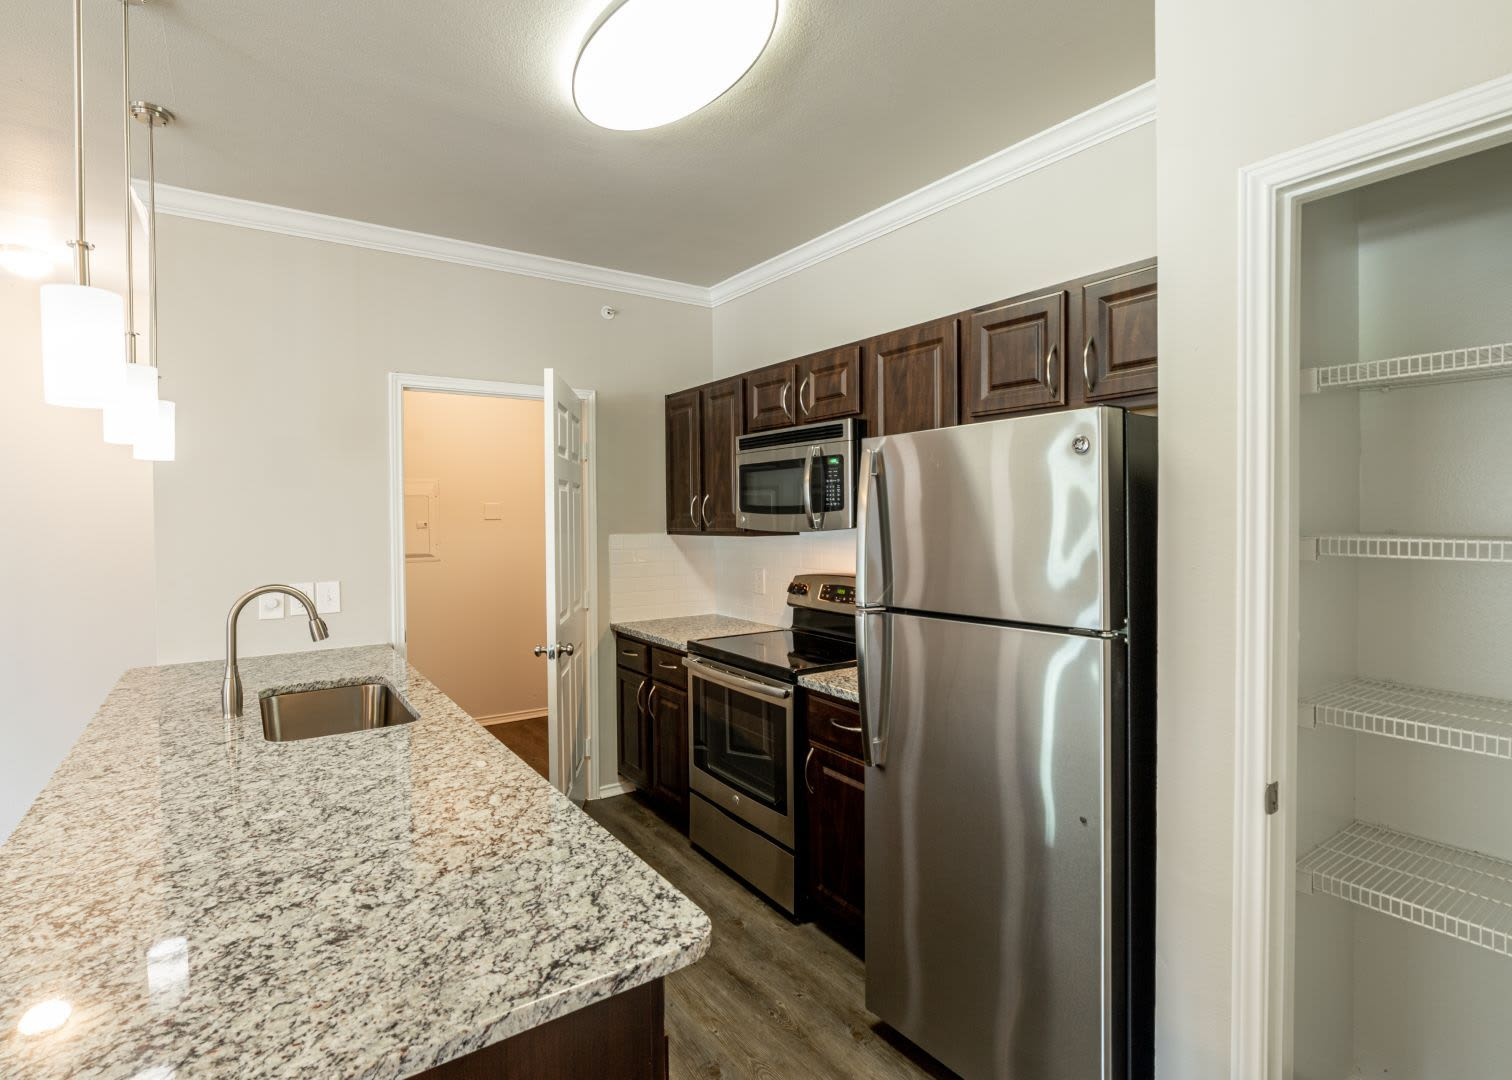 Modern kitchen with granite style countertops at Marquis at Stonebriar in Frisco, Texas